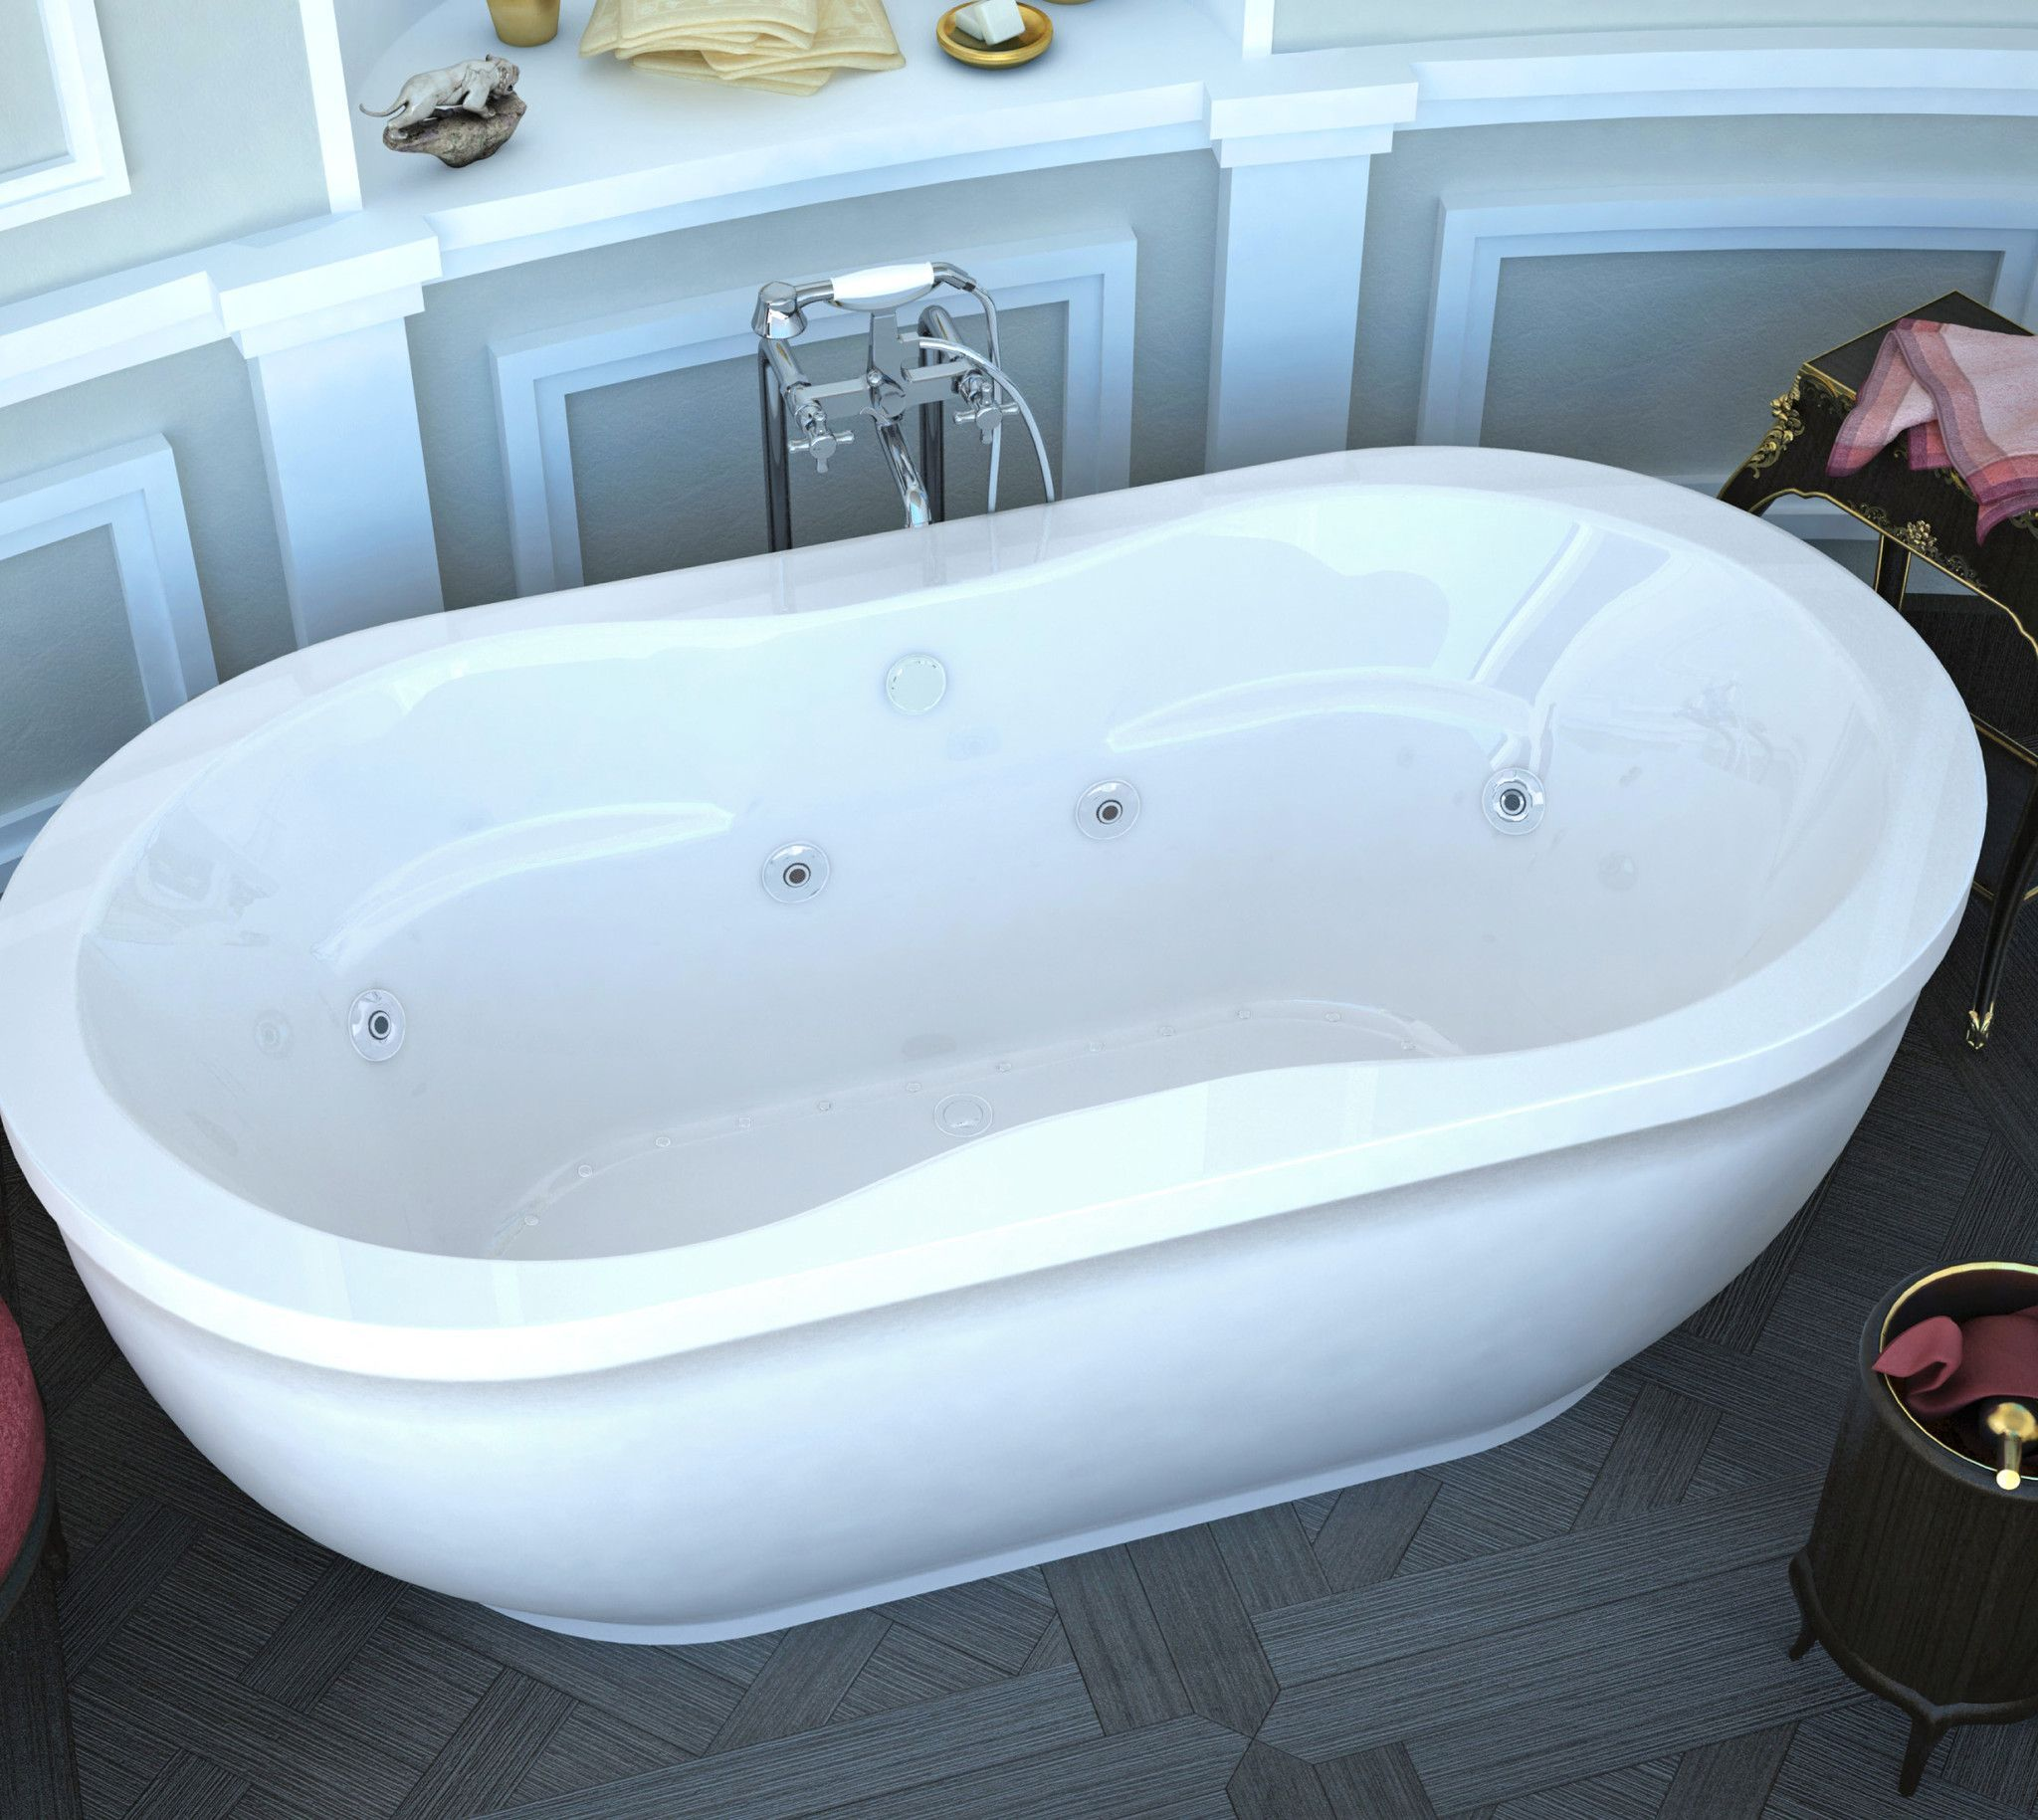 Atlantis Whirlpools 3471AD Embrace 34 x 71 Oval Freestanding Air ...